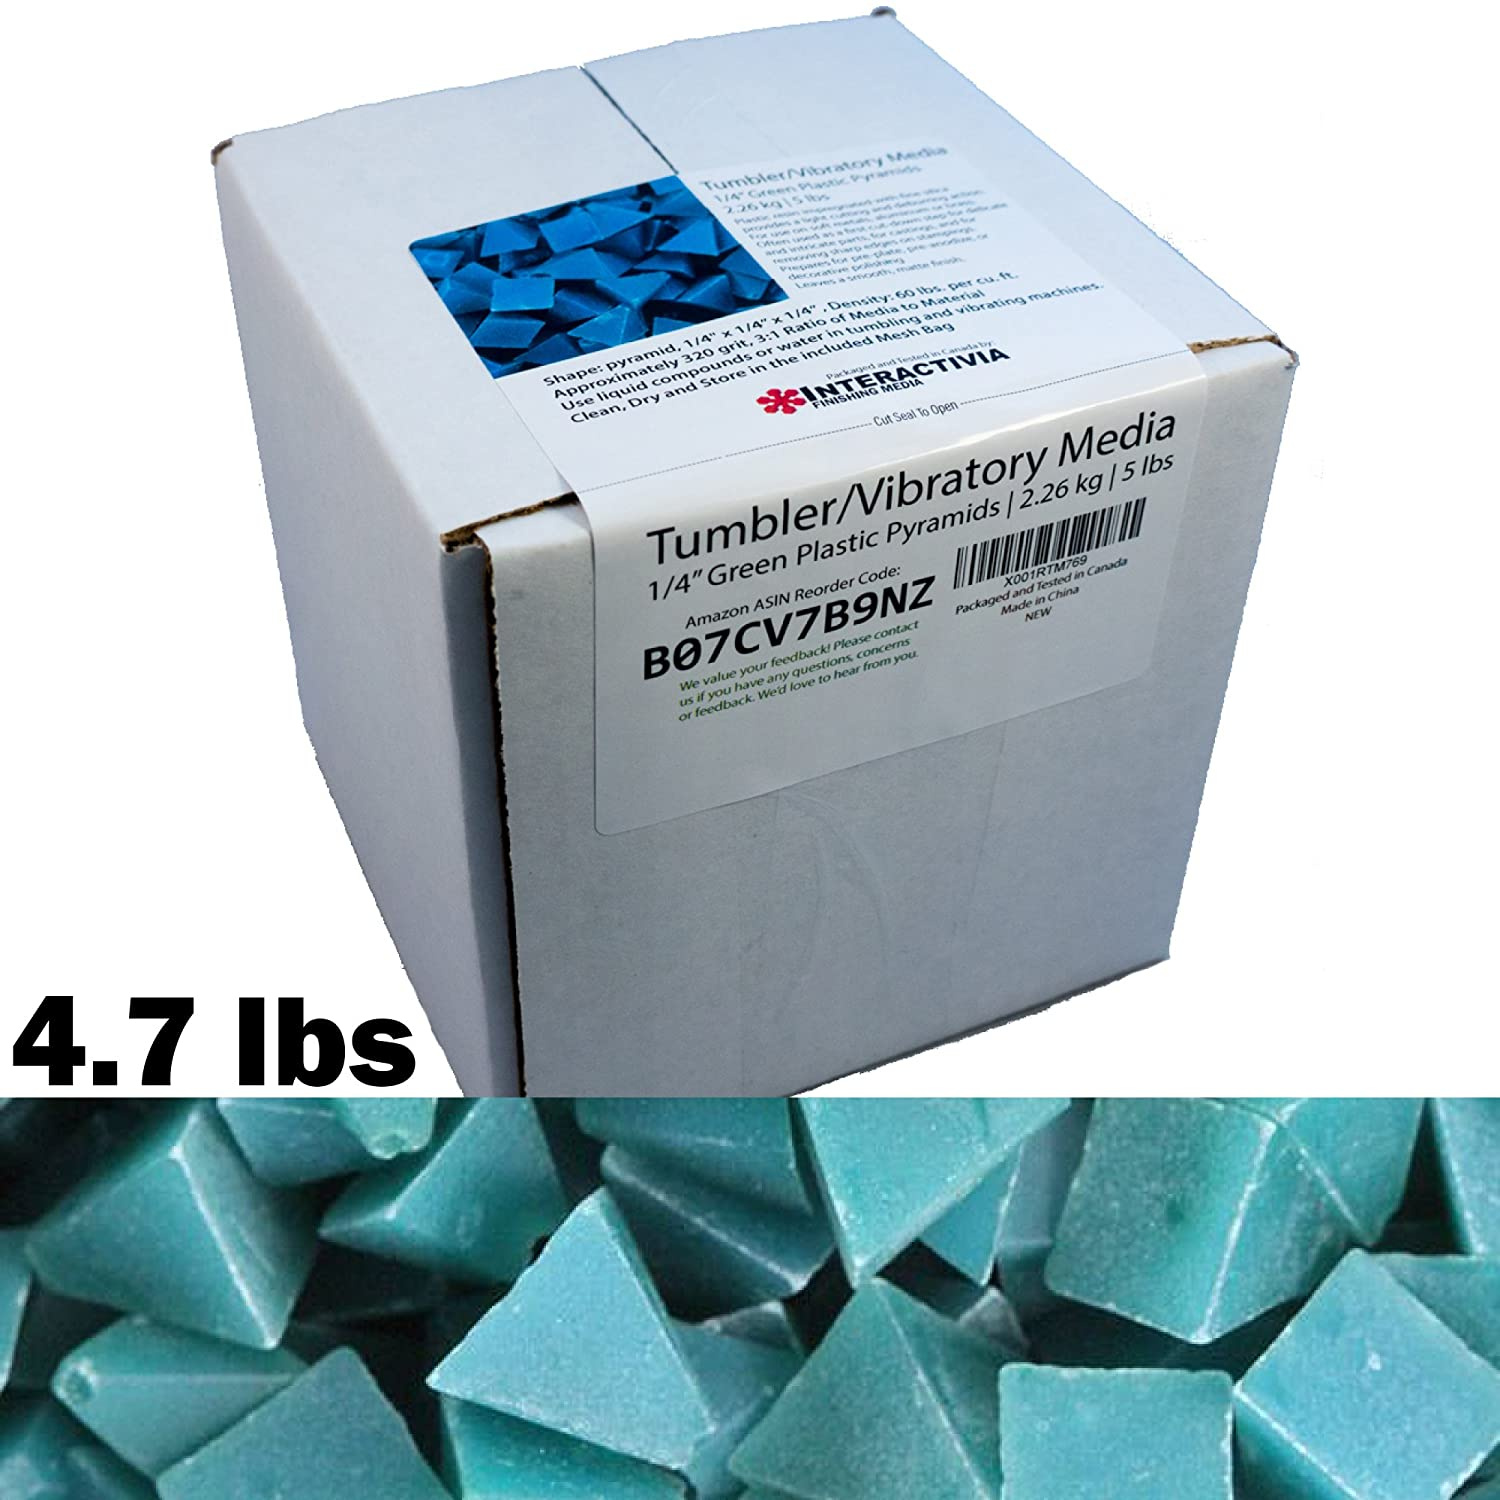 Mesh Bag 1//4 inch Green Plastic Resin Pyramid Tumbling Or Vibratory Media 4.7 lbs//2.1 kg Includes a for use in Vibrating Tumbler Or Rotating Tumblers Approx 320 grit Clean, Dry and Store